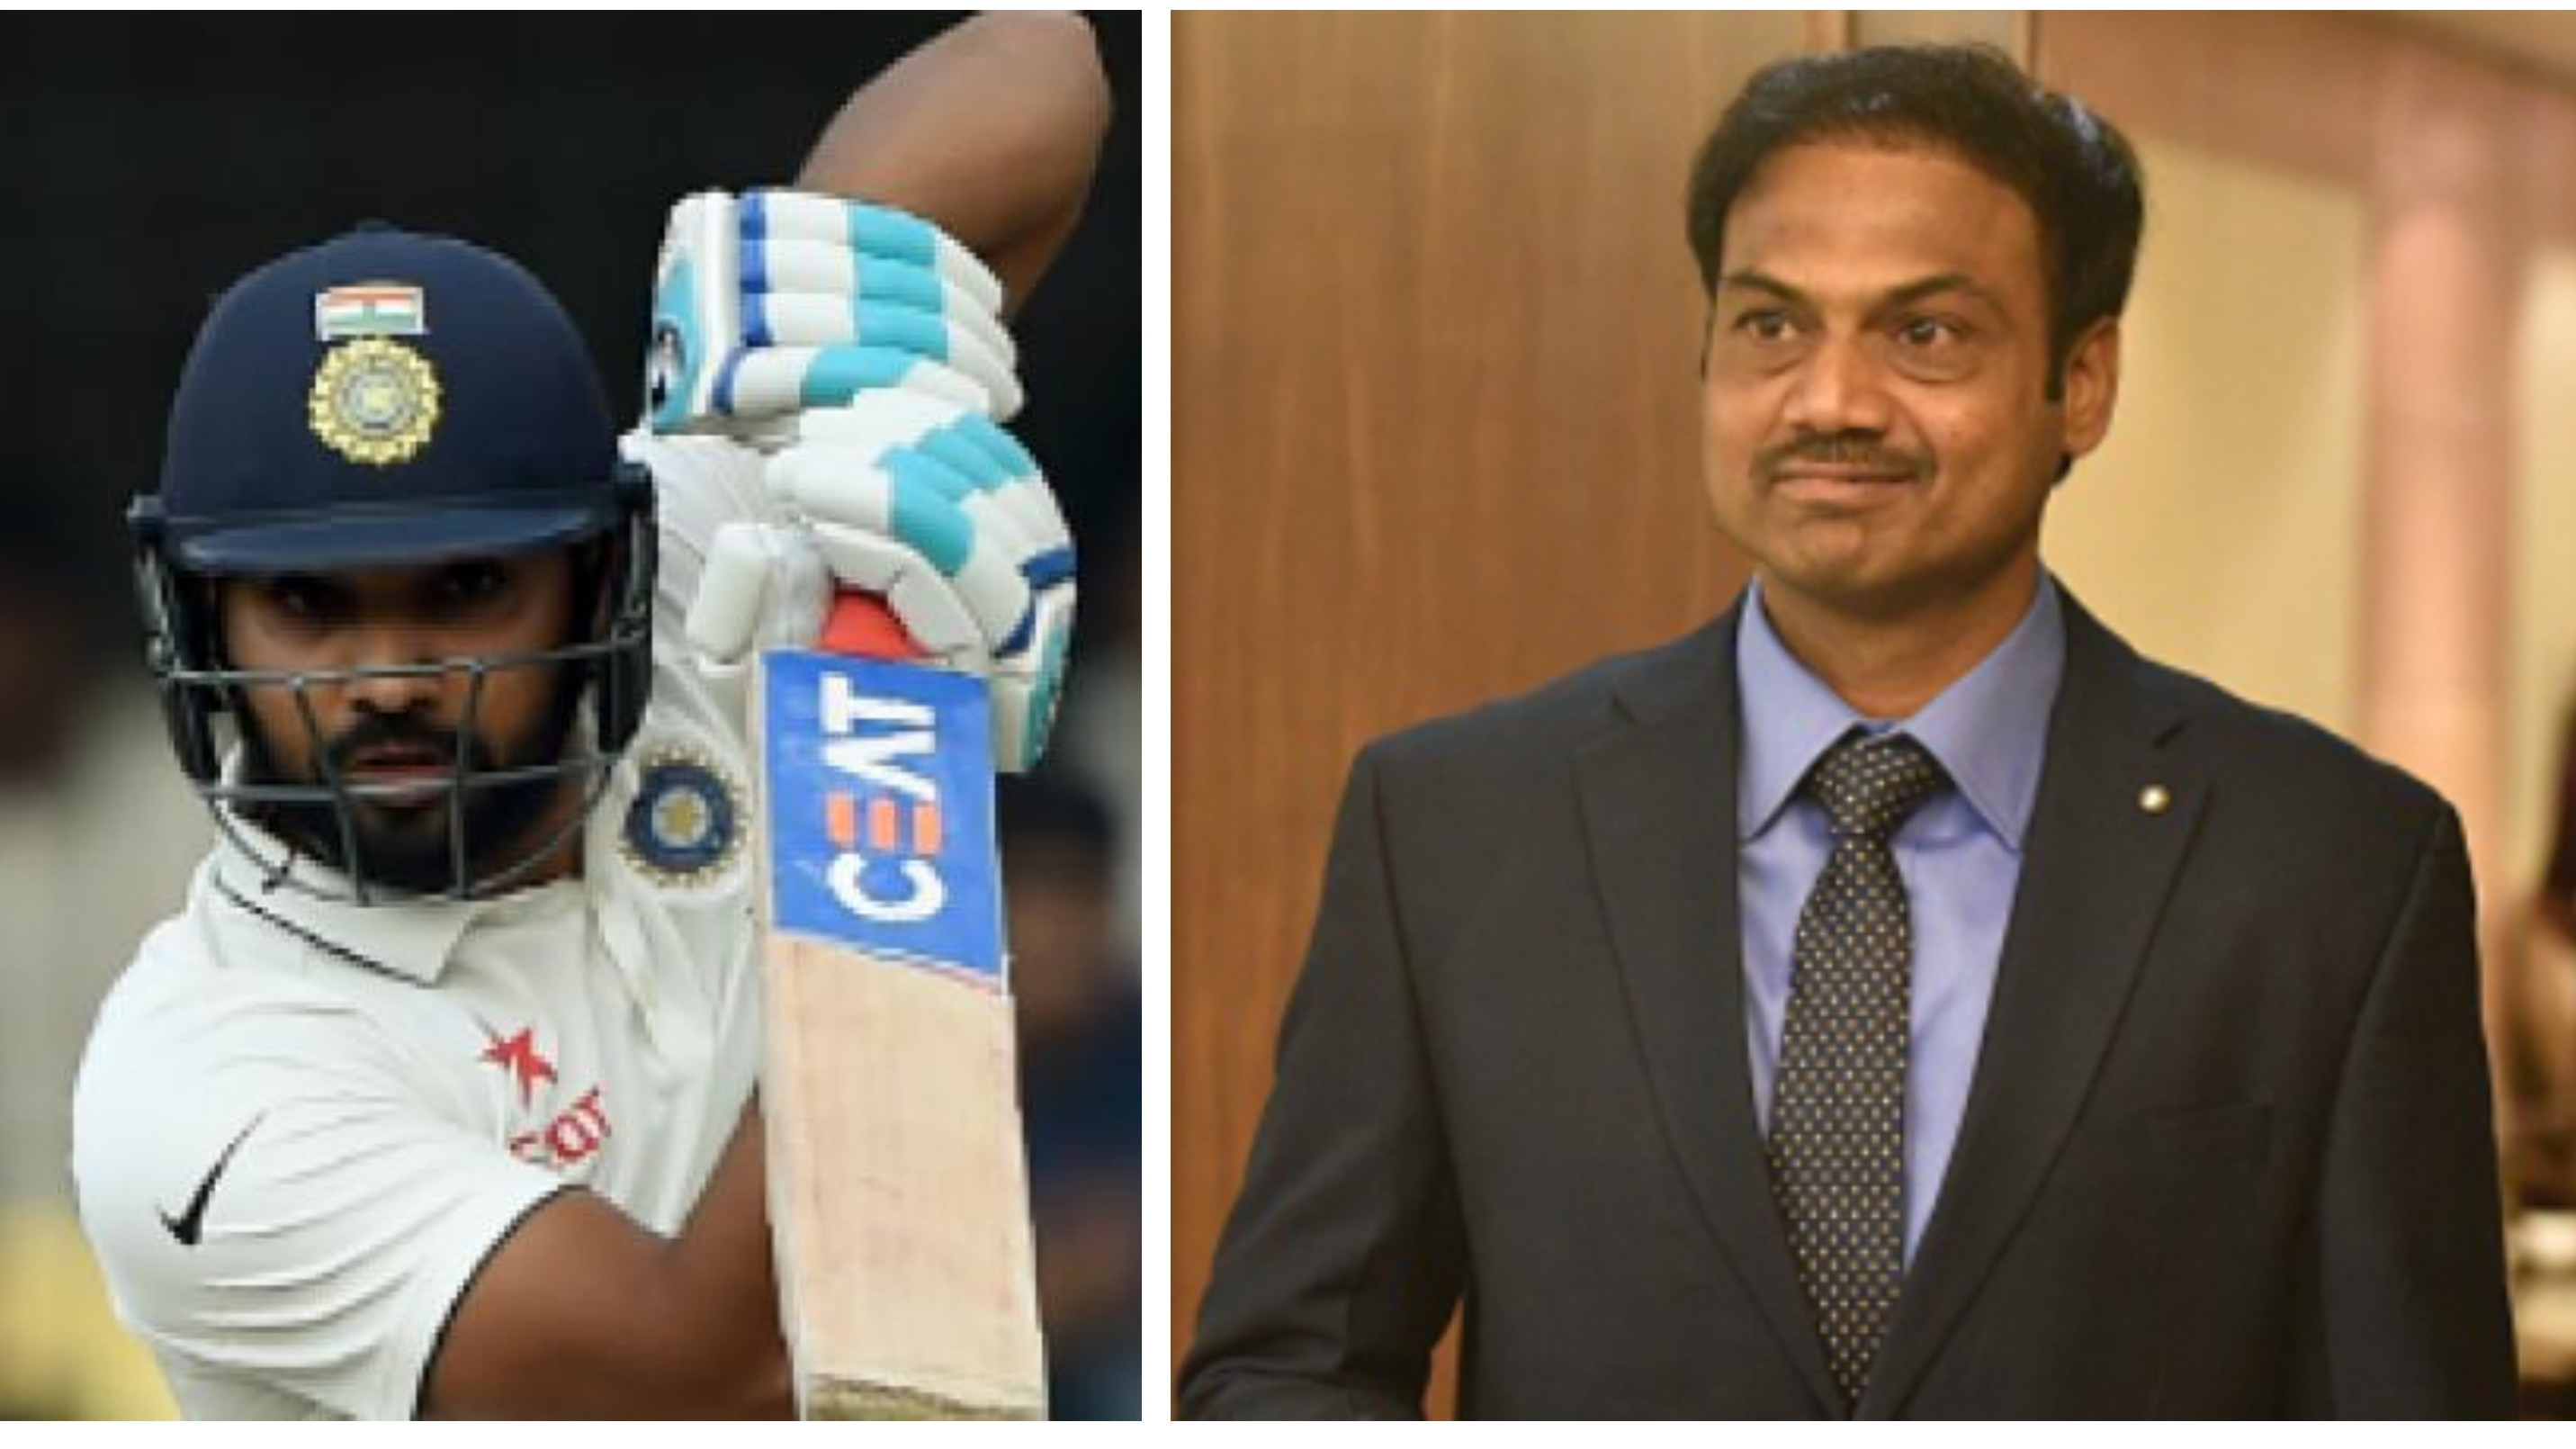 Rohit Sharma perfectly suited to bat in Australia, says chief selector MSK Prasad